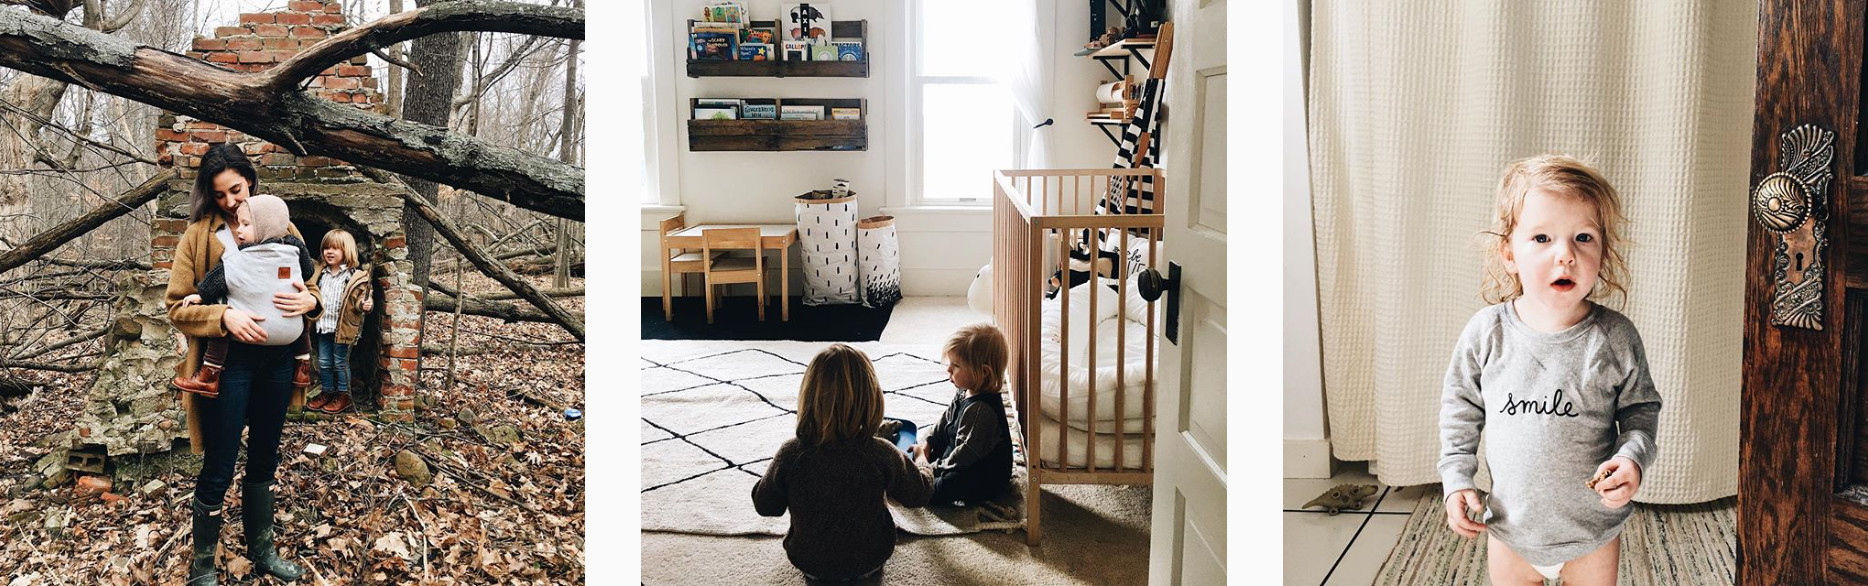 5 Cool Moms to Follow on Instagram - Planoly Blog - Mother's Day - Lindsey Badenhop